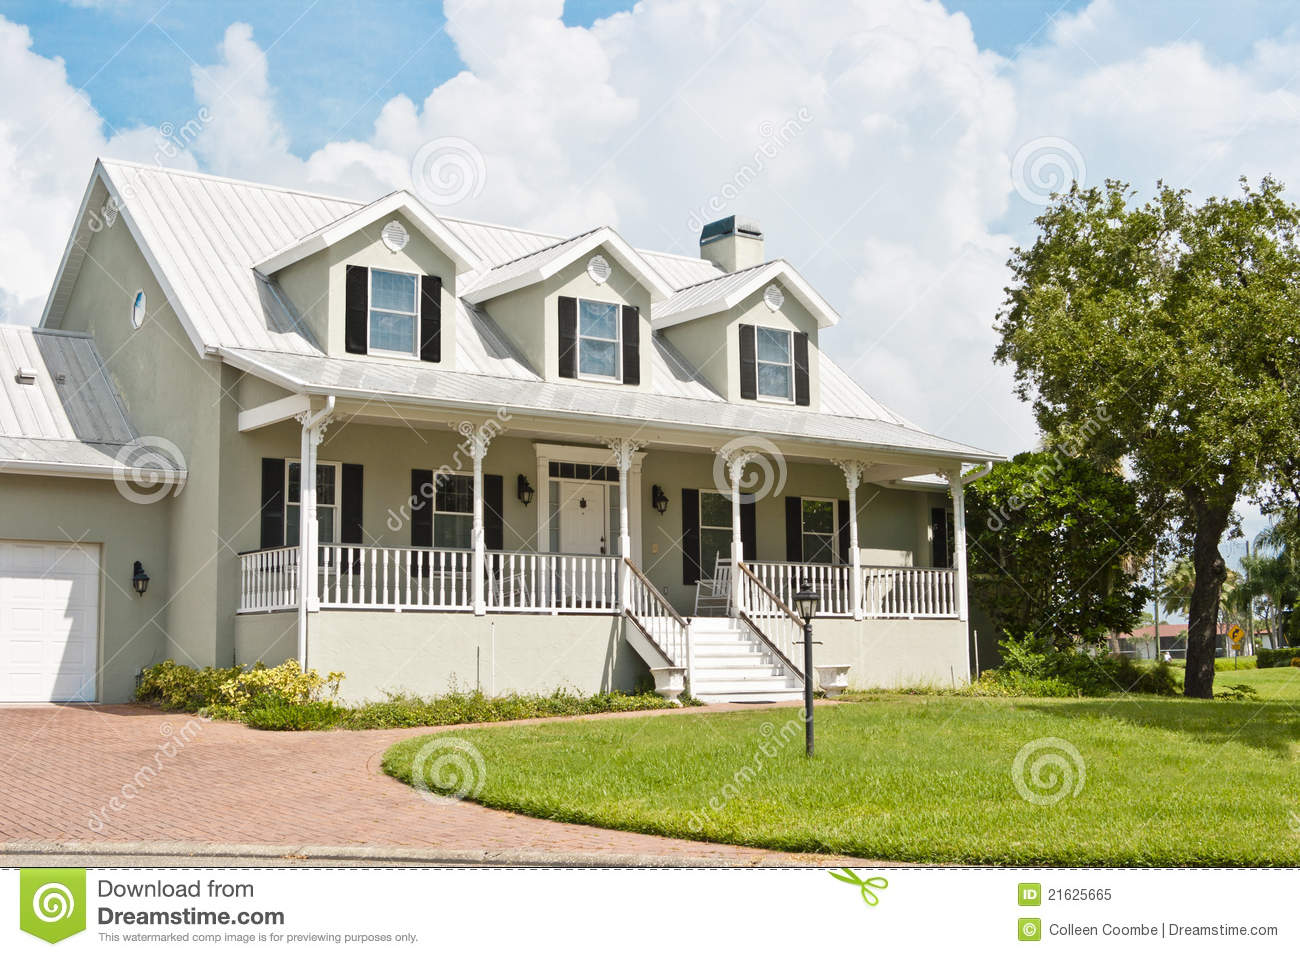 Home With Porch And Dormer Windows Royalty Free Stock